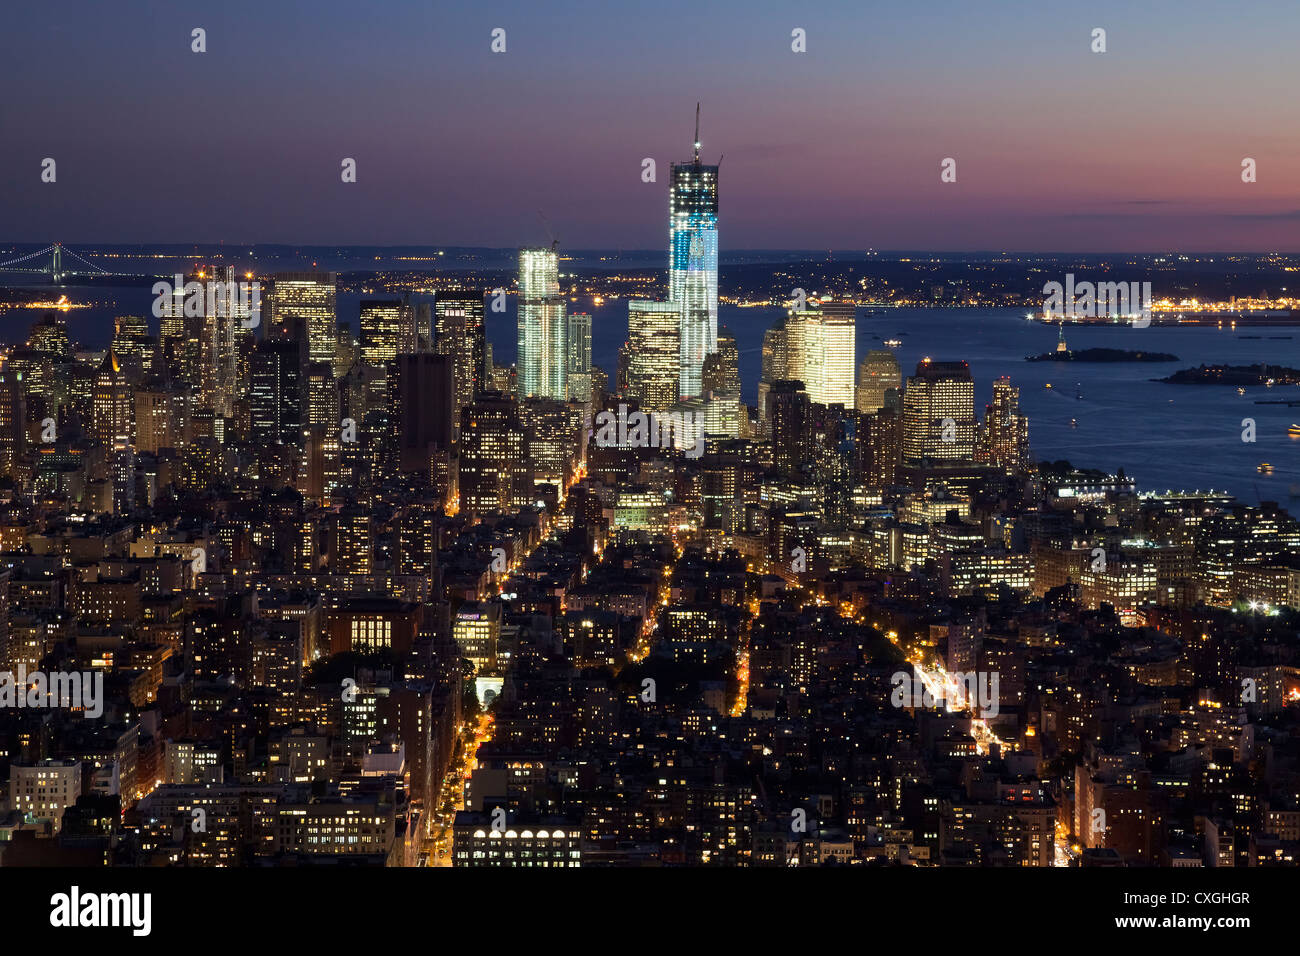 The New York City skyline at twilight w the Freedom tower - Stock Image